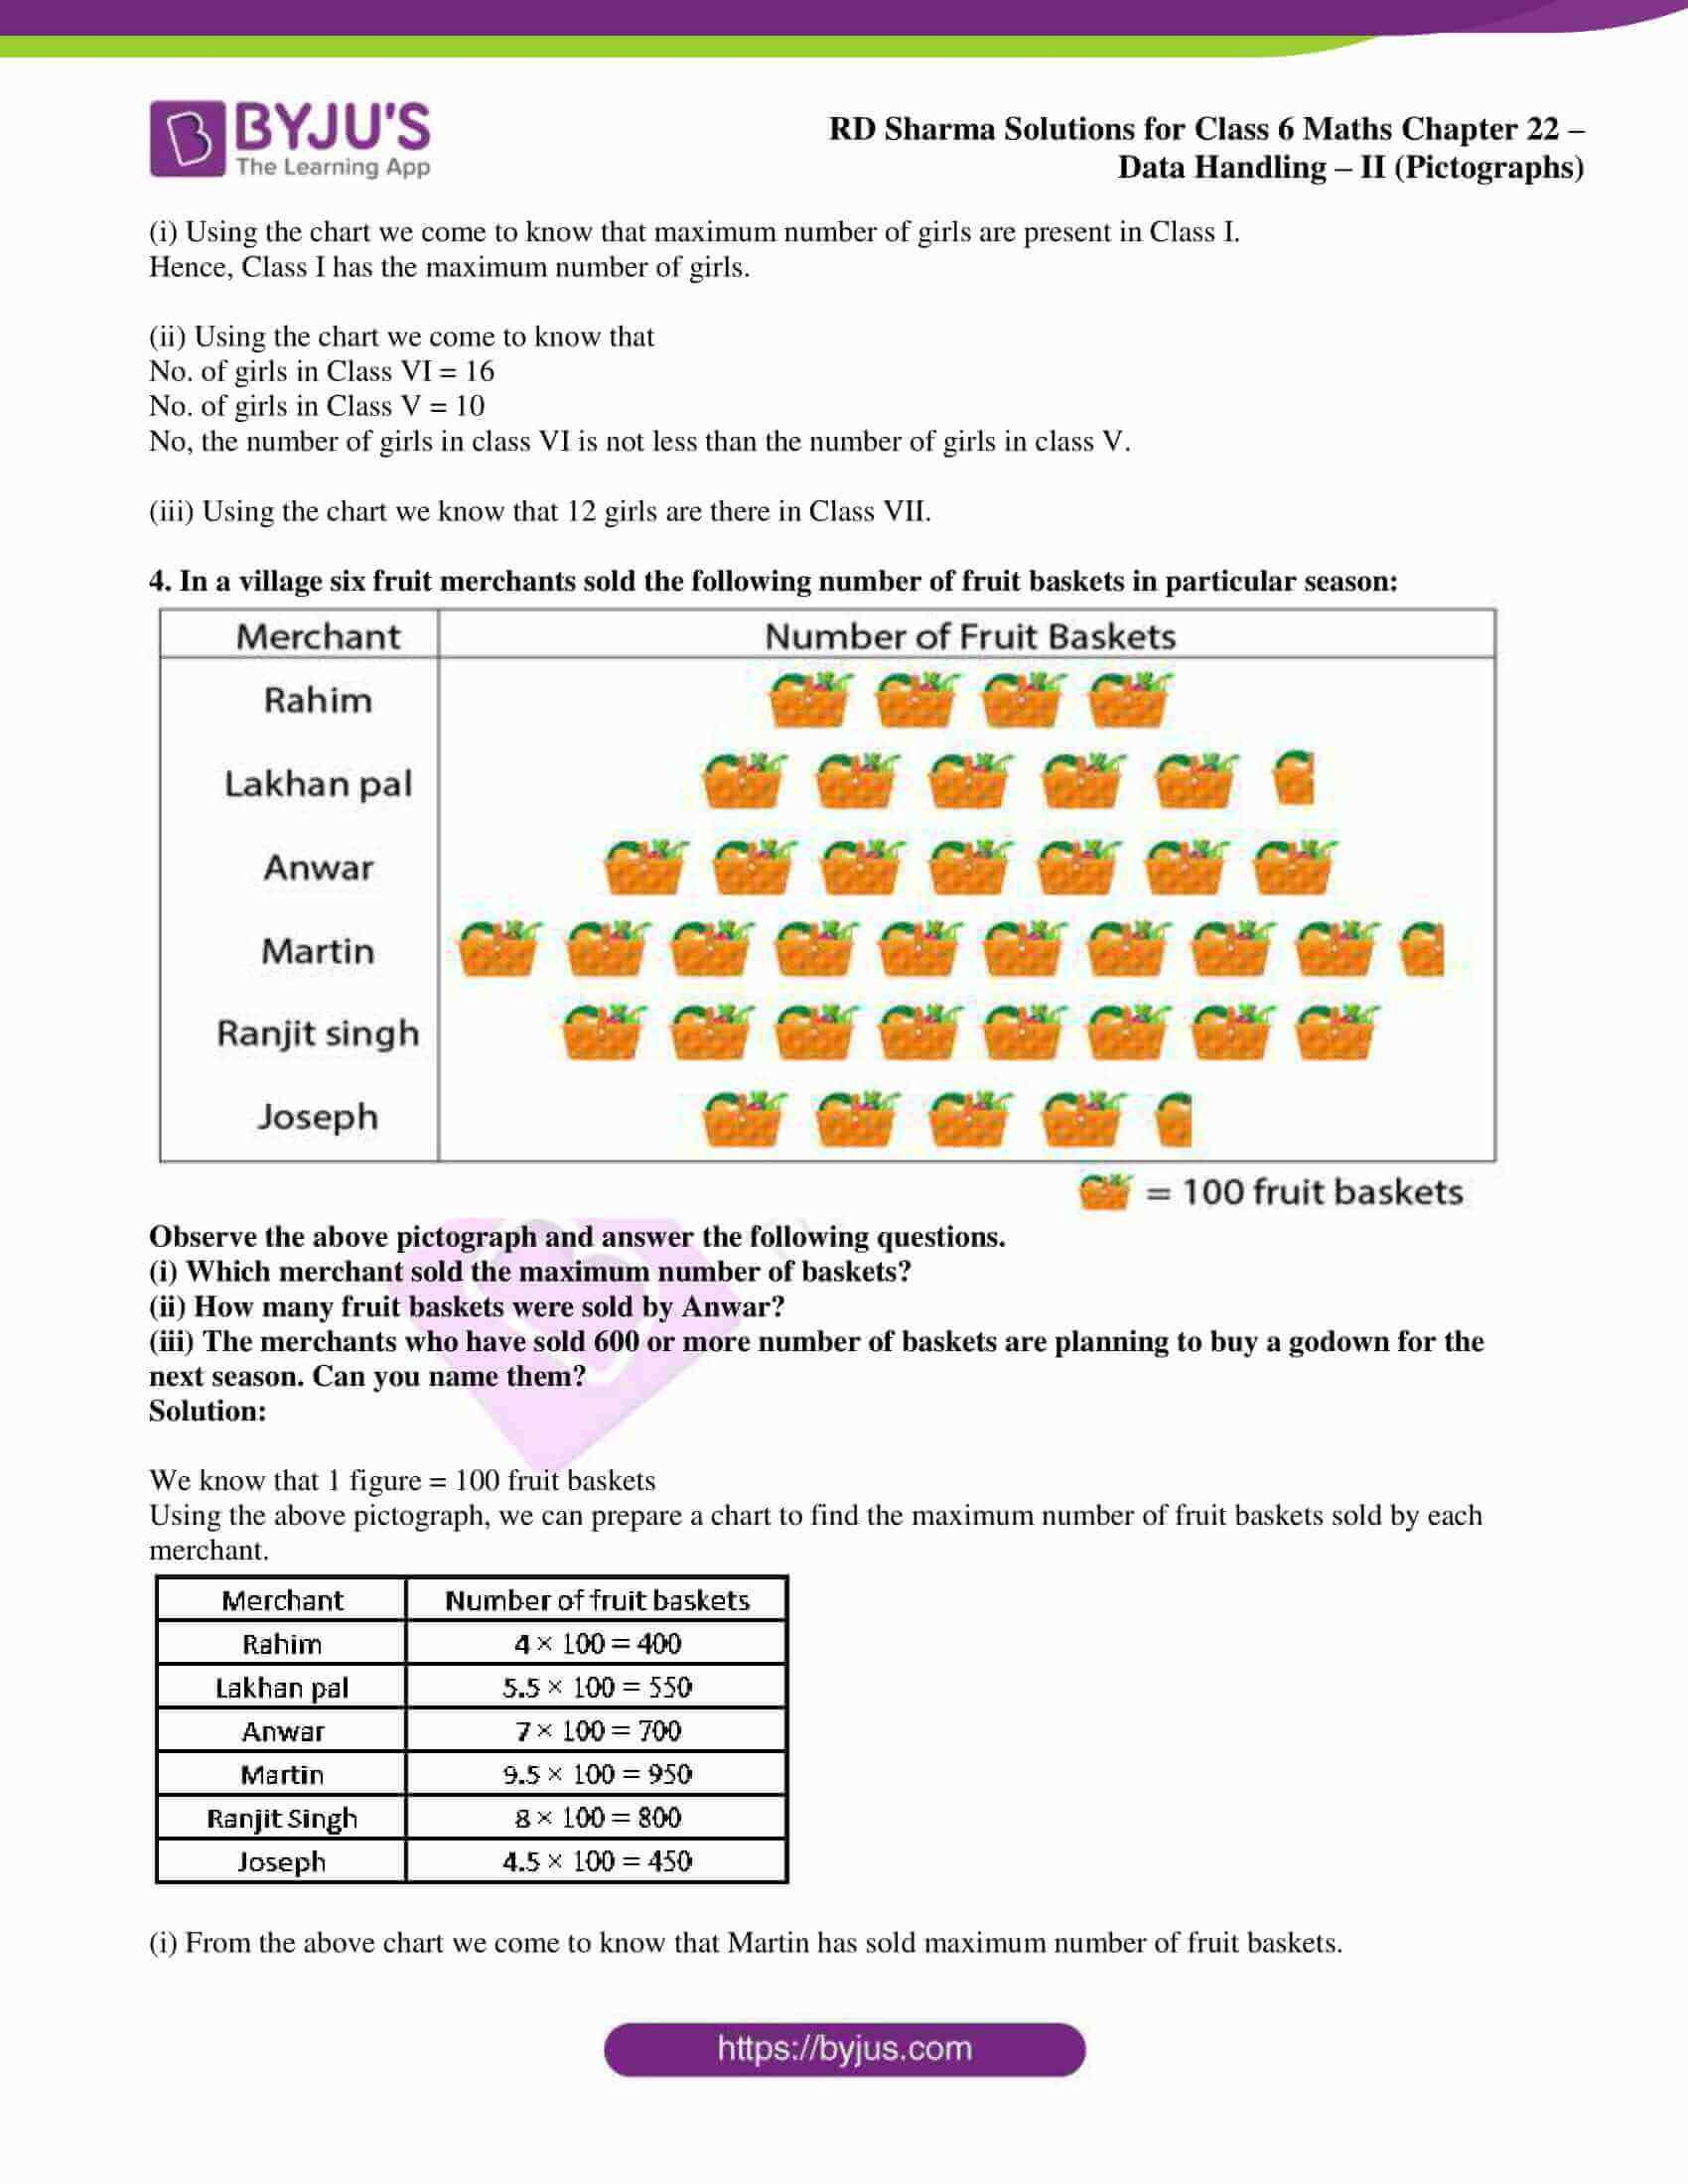 hight resolution of RD Sharma Solutions for Class 6 Chapter 22 Data Handling - II (Pictographs)  download PDF